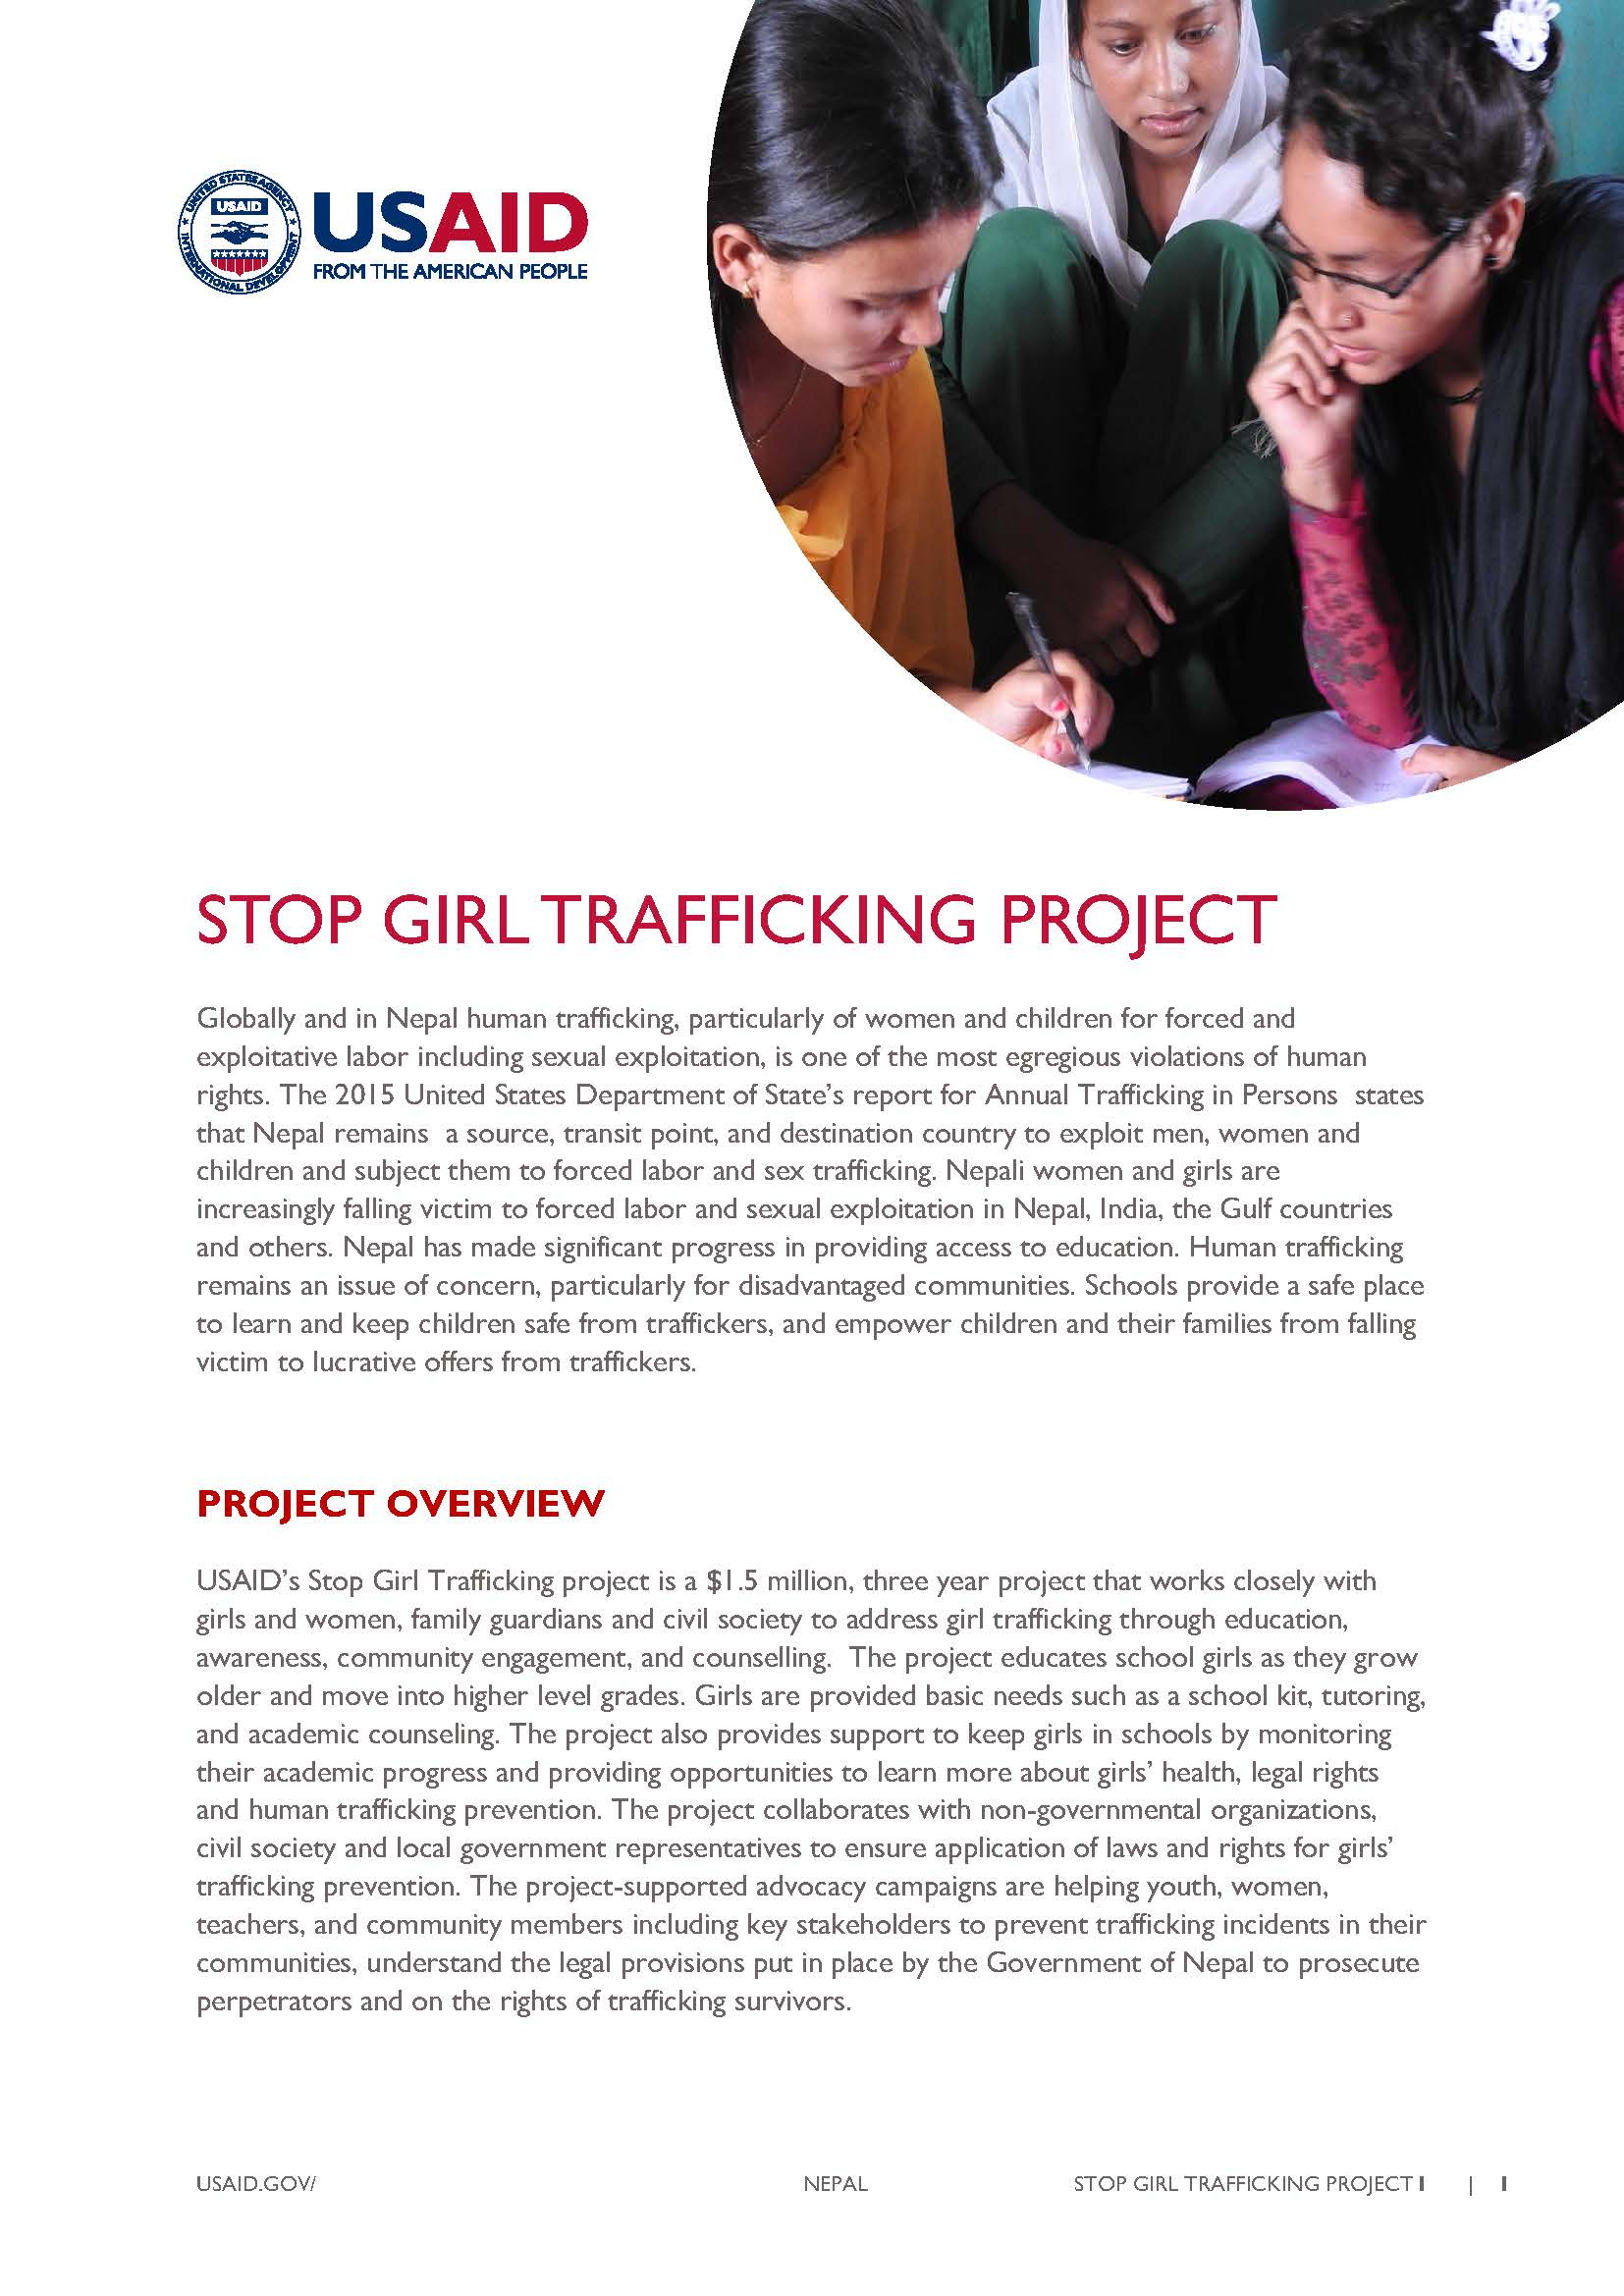 Fact Sheet: Stop Girl Trafficking Project